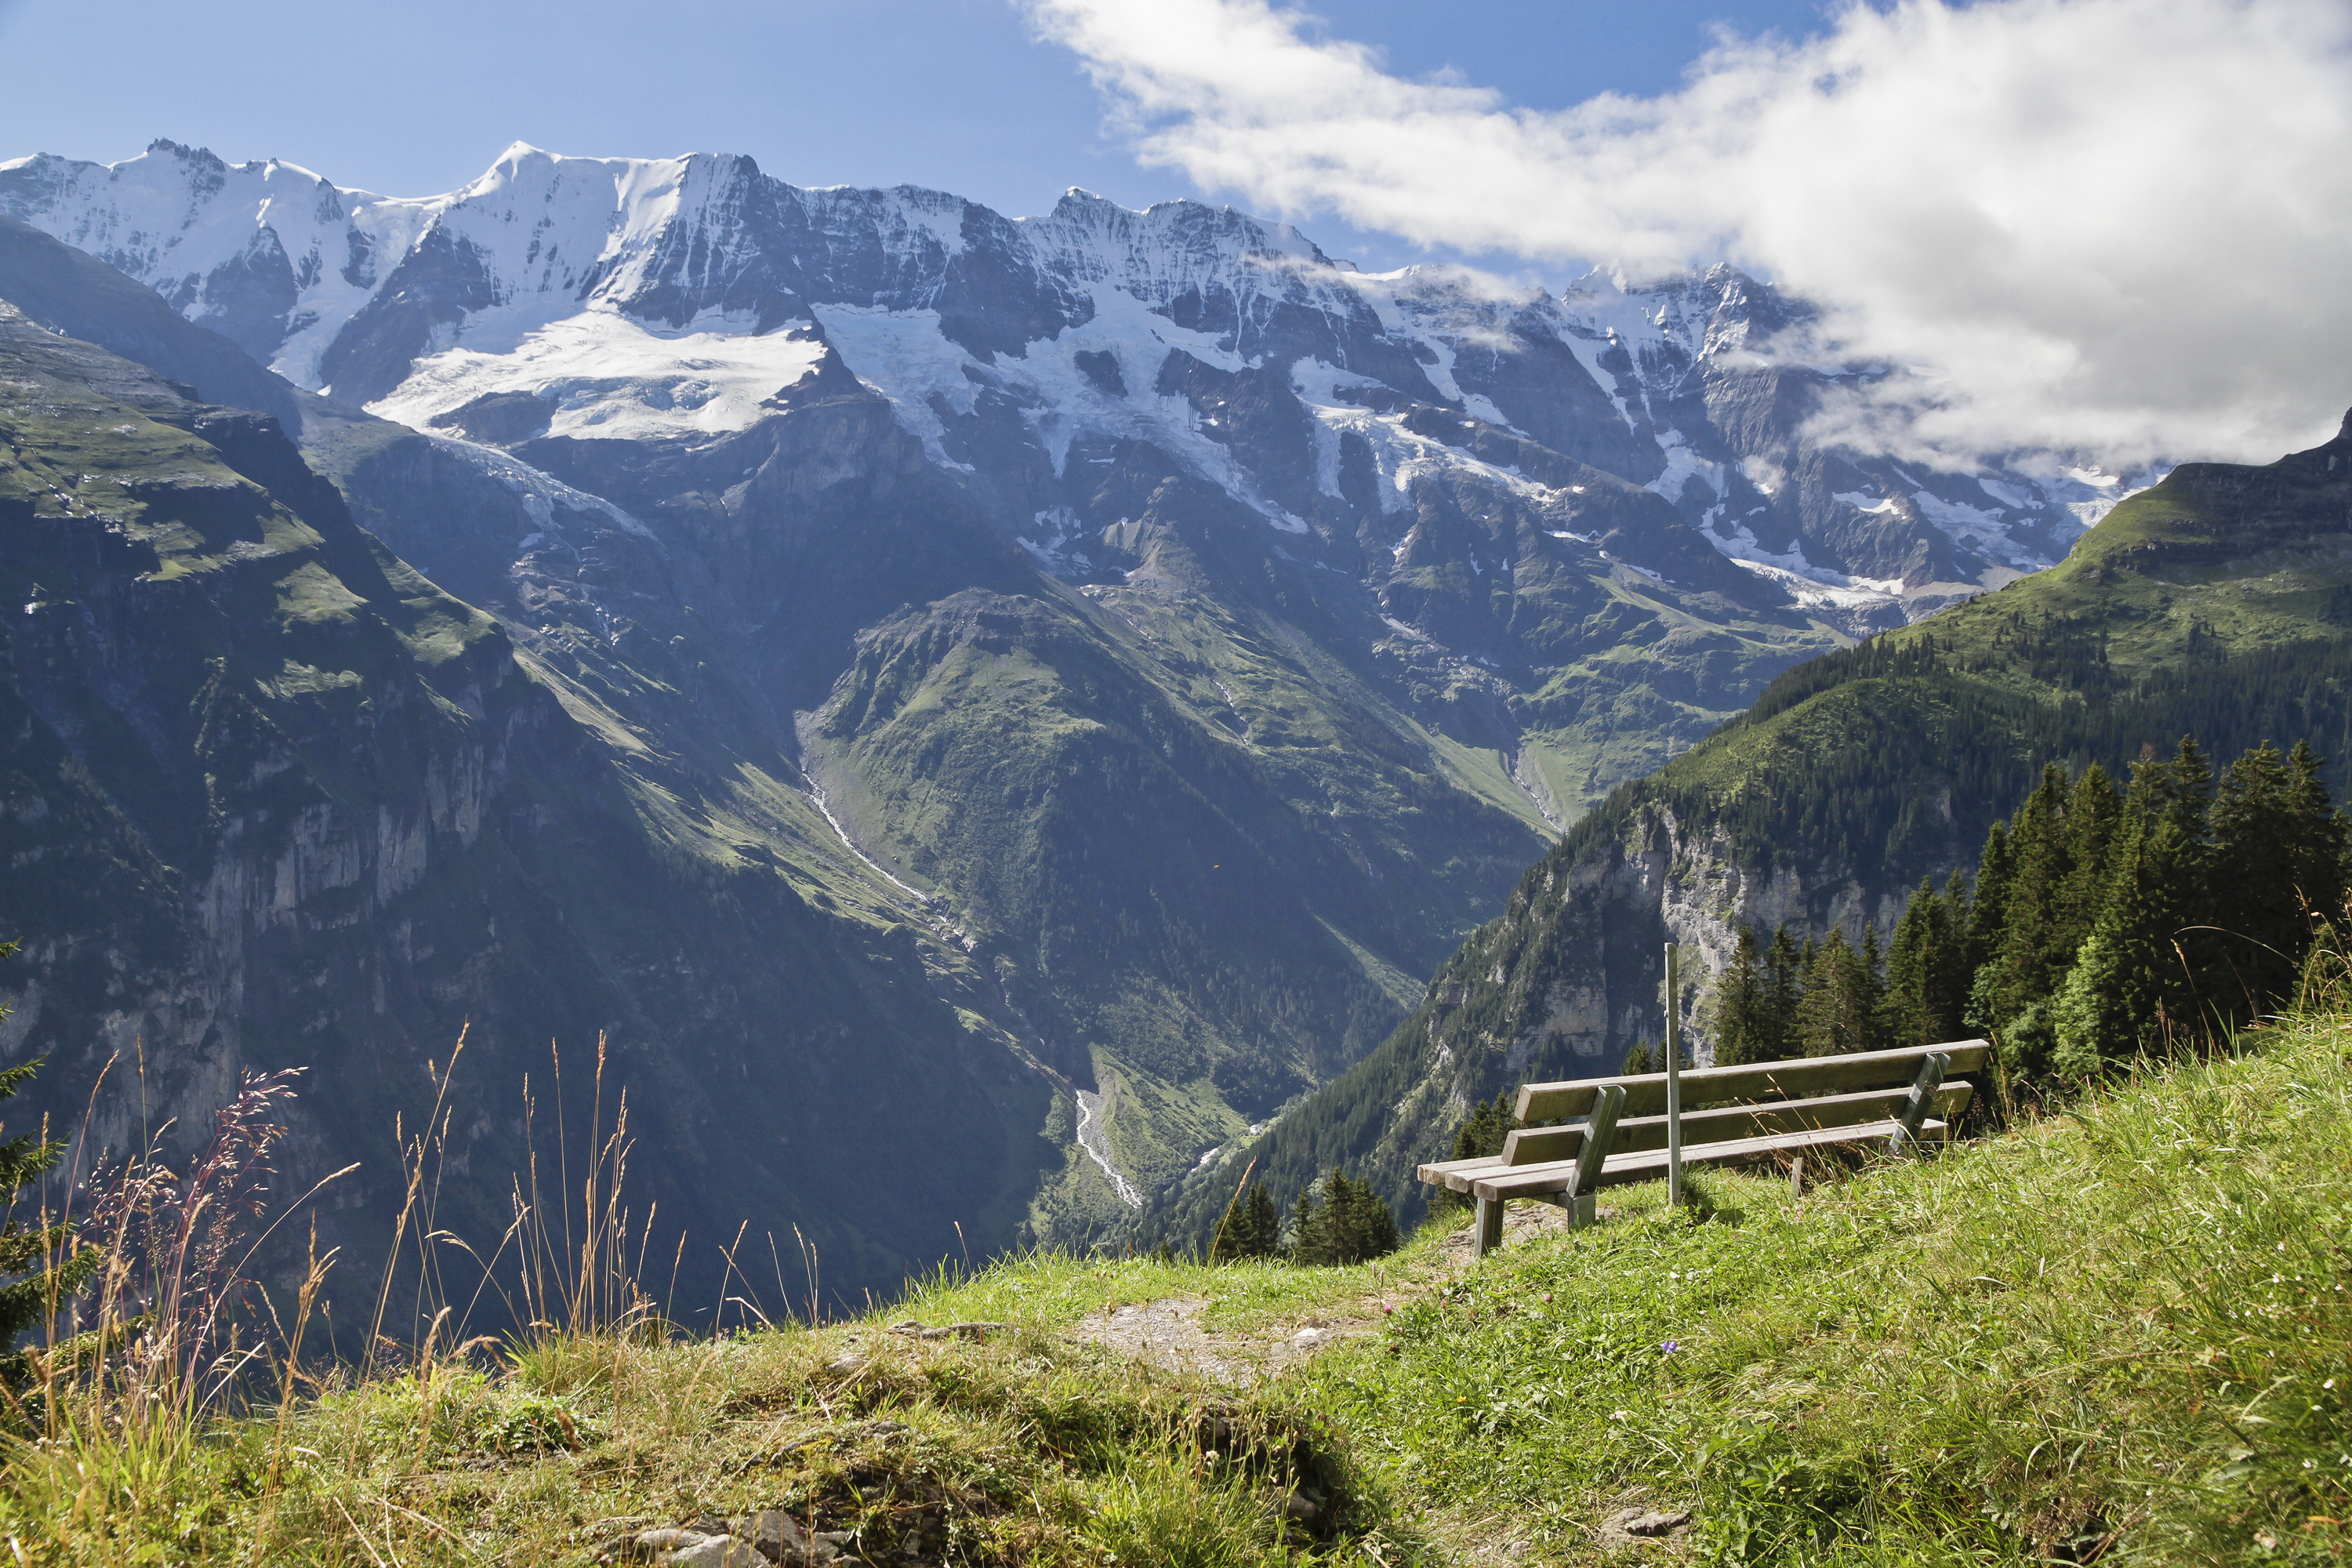 Resting_point_with_view_to_Bernese_Alps_at_Mürren,_Bern,_Switzerland,_2012_August